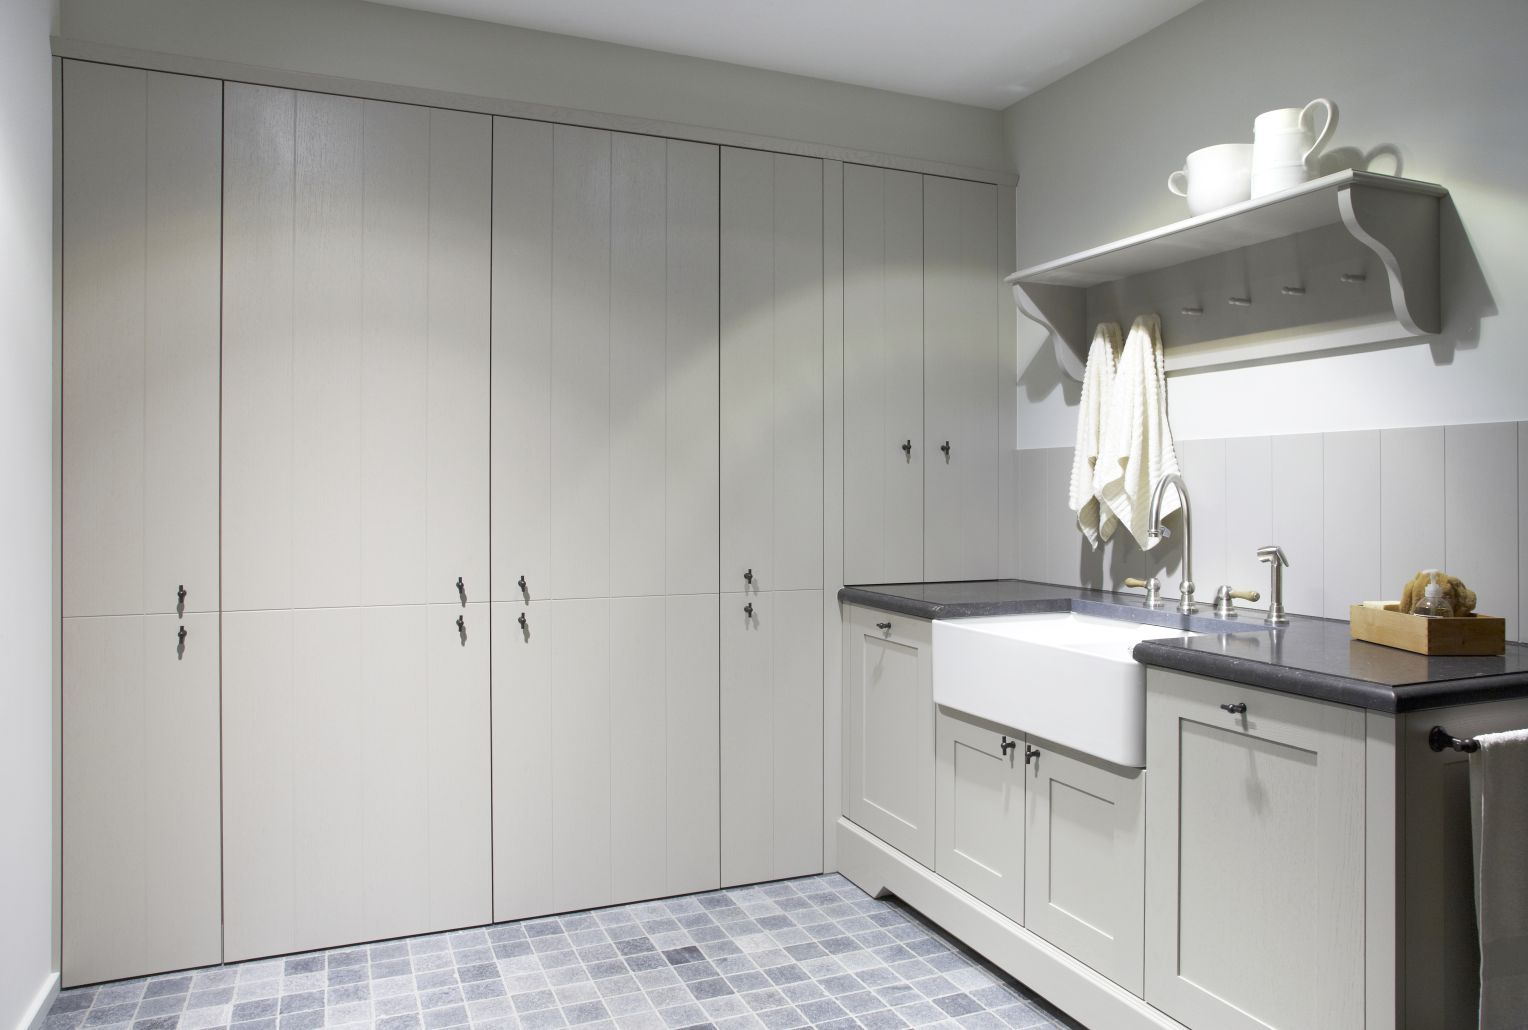 Kitchen Cabinets Newfoundland Kitchen Or Bathroom Cabinets Combination Of Doorstyles